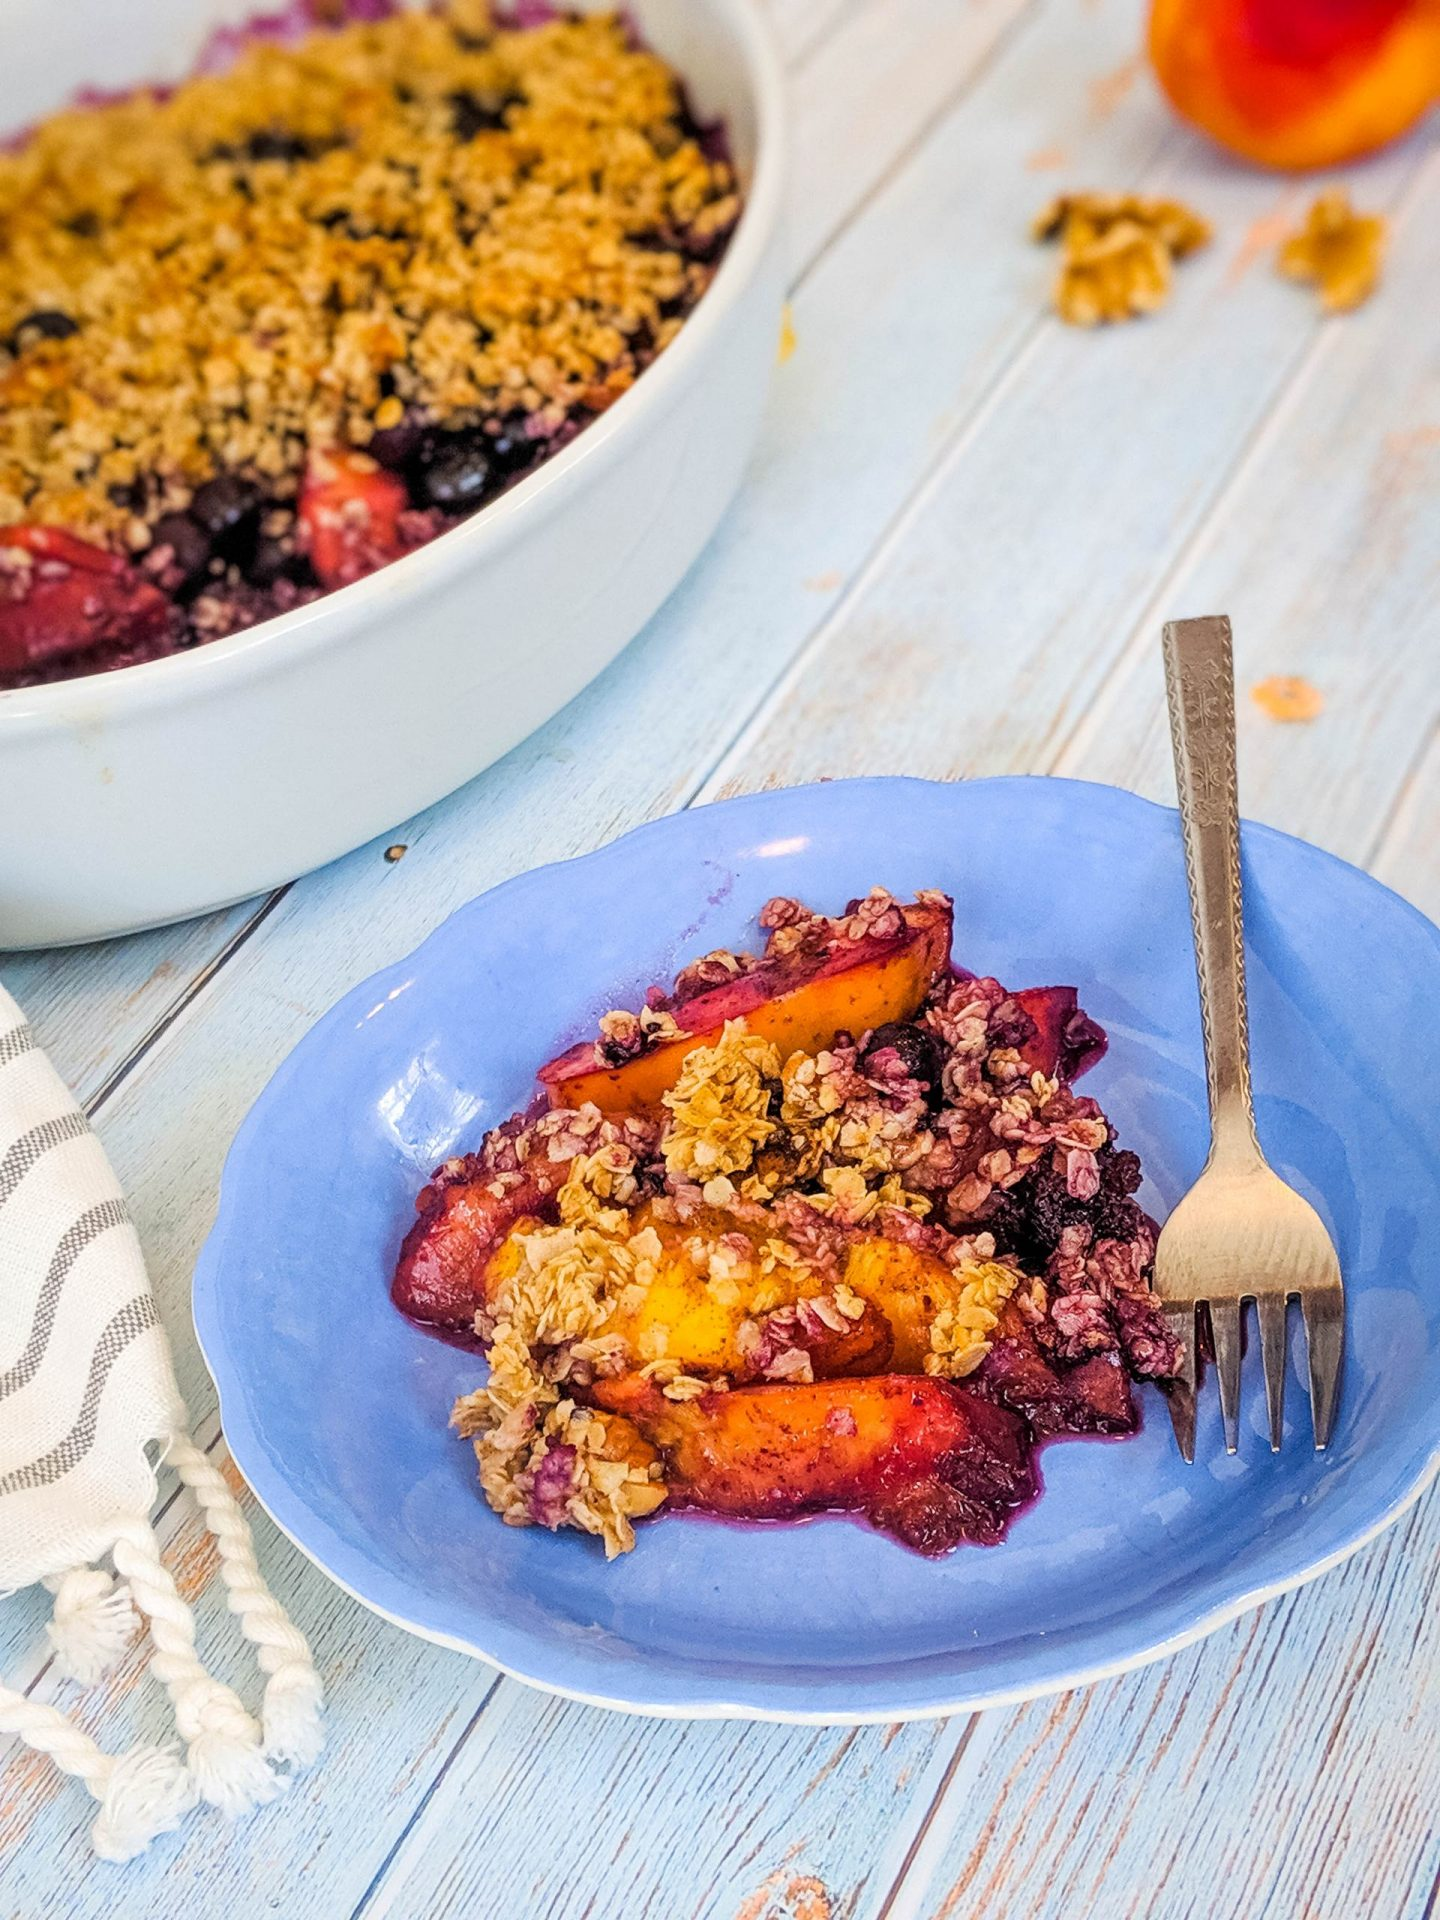 vegan crumble nectarine crumble bluberries